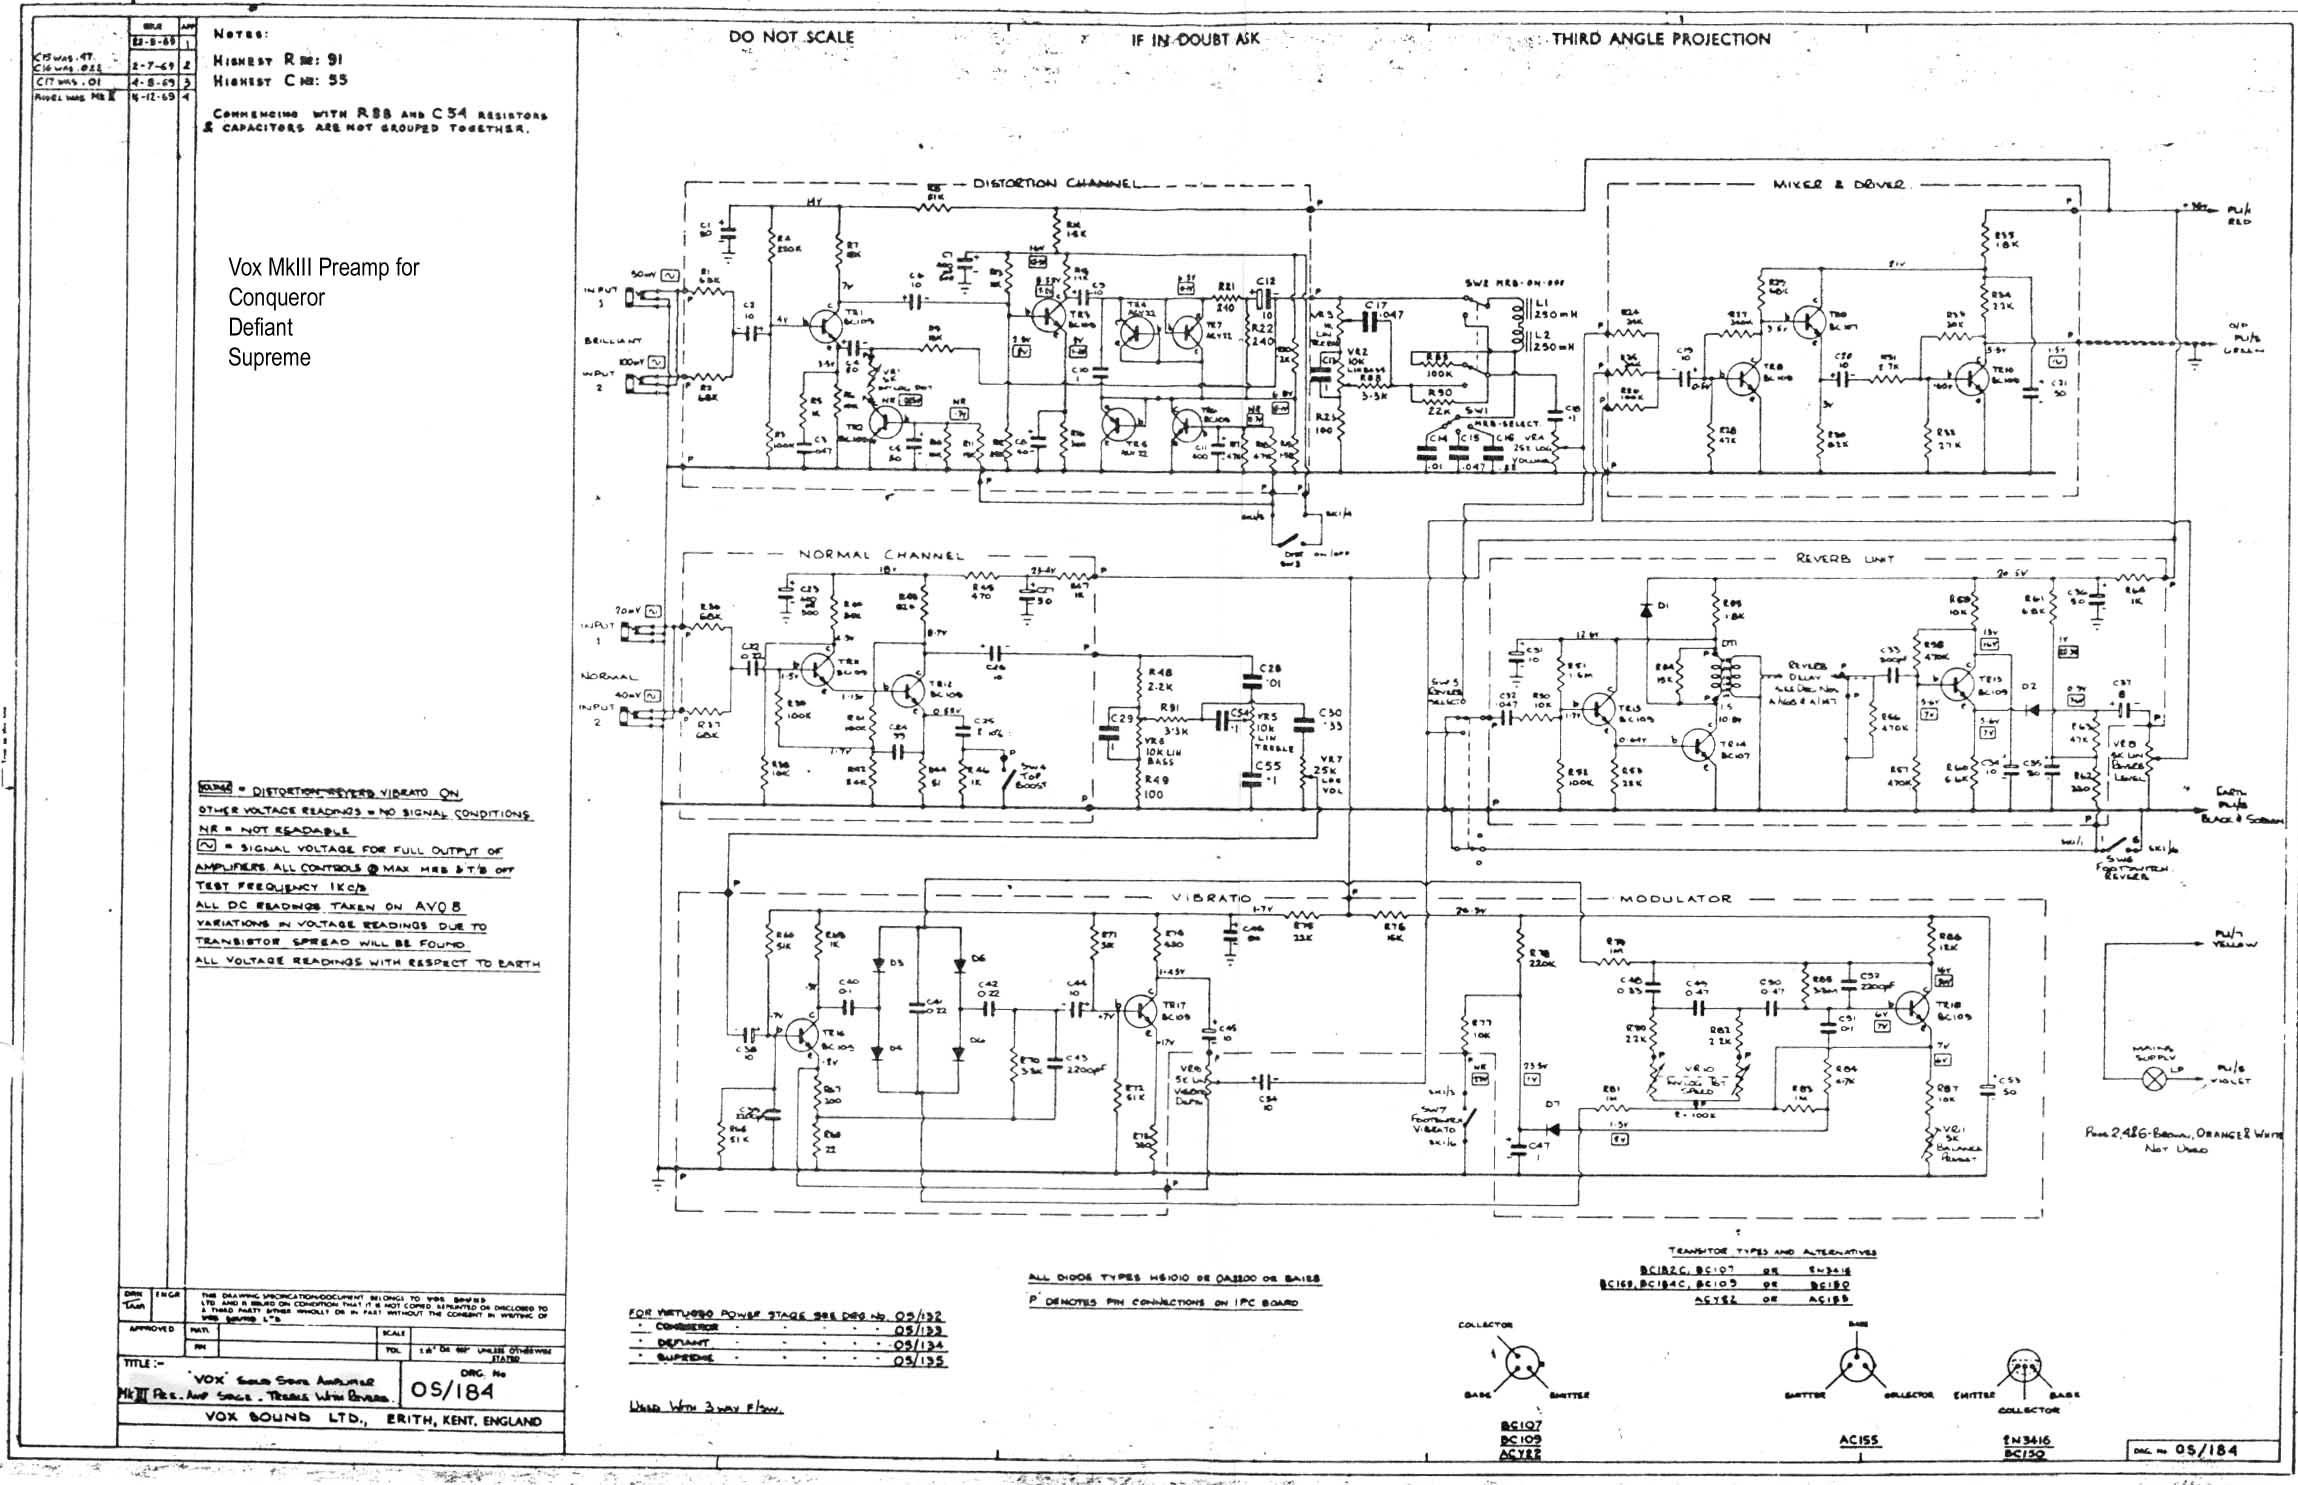 boss phantom subwoofer wiring diagram basic wiring diagram u2022 rh rnetcomputer co Car Stereo to Equalizer Diagram Dual Voice Coil Wiring